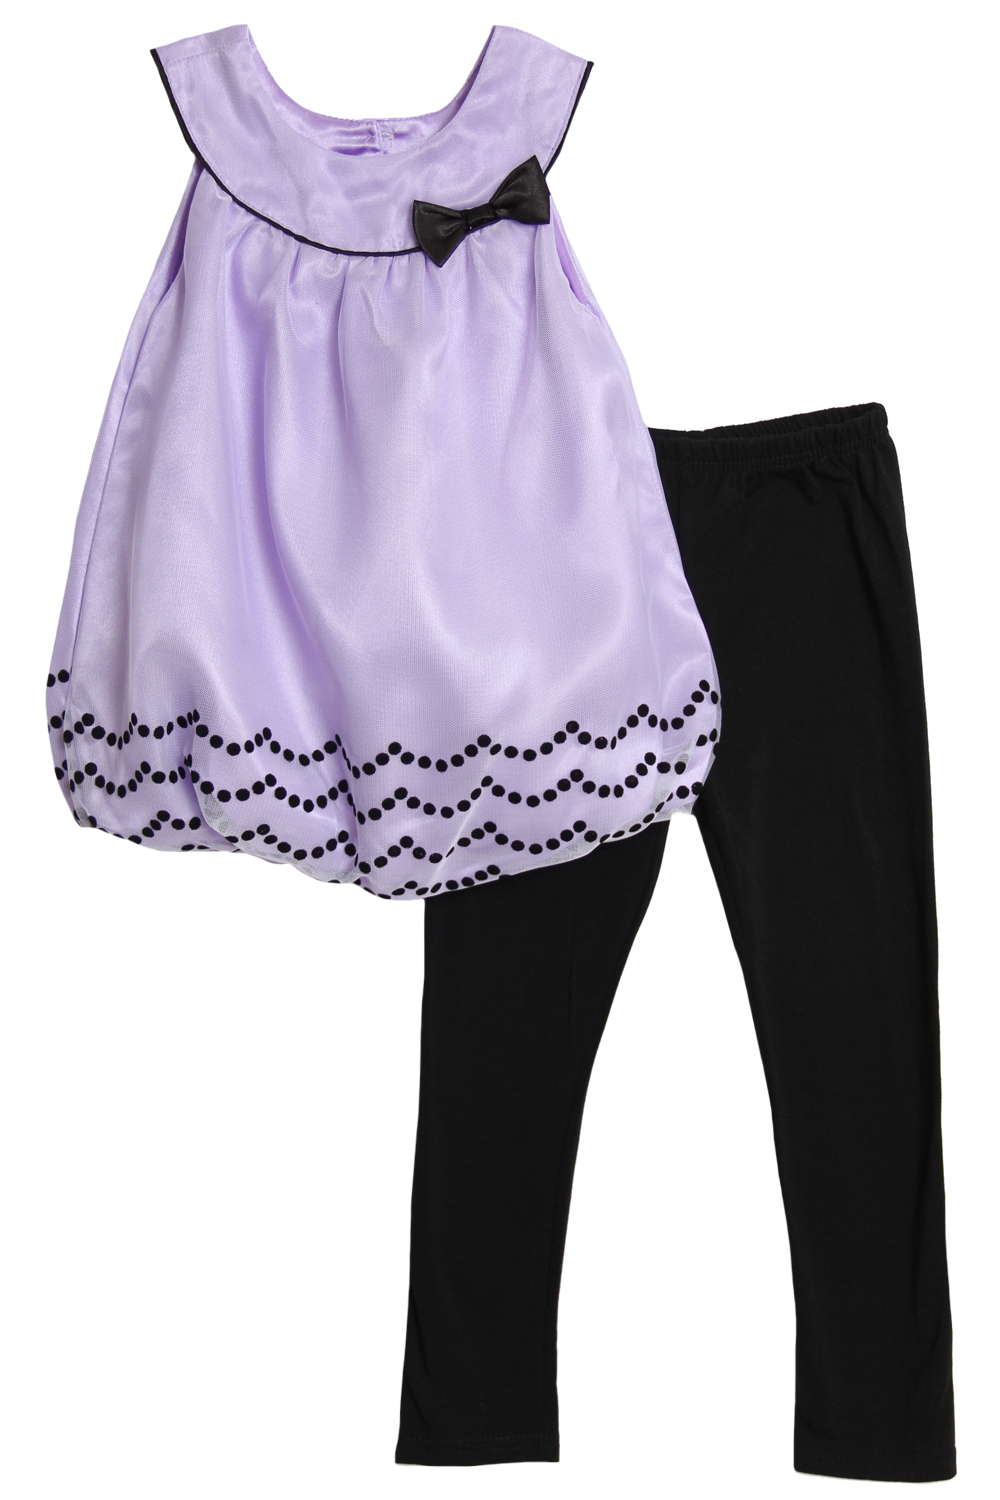 Angel Face Infant Baby Girls 2 Piece Purple Sleeveless Bubble Top Leggings Set at Sears.com